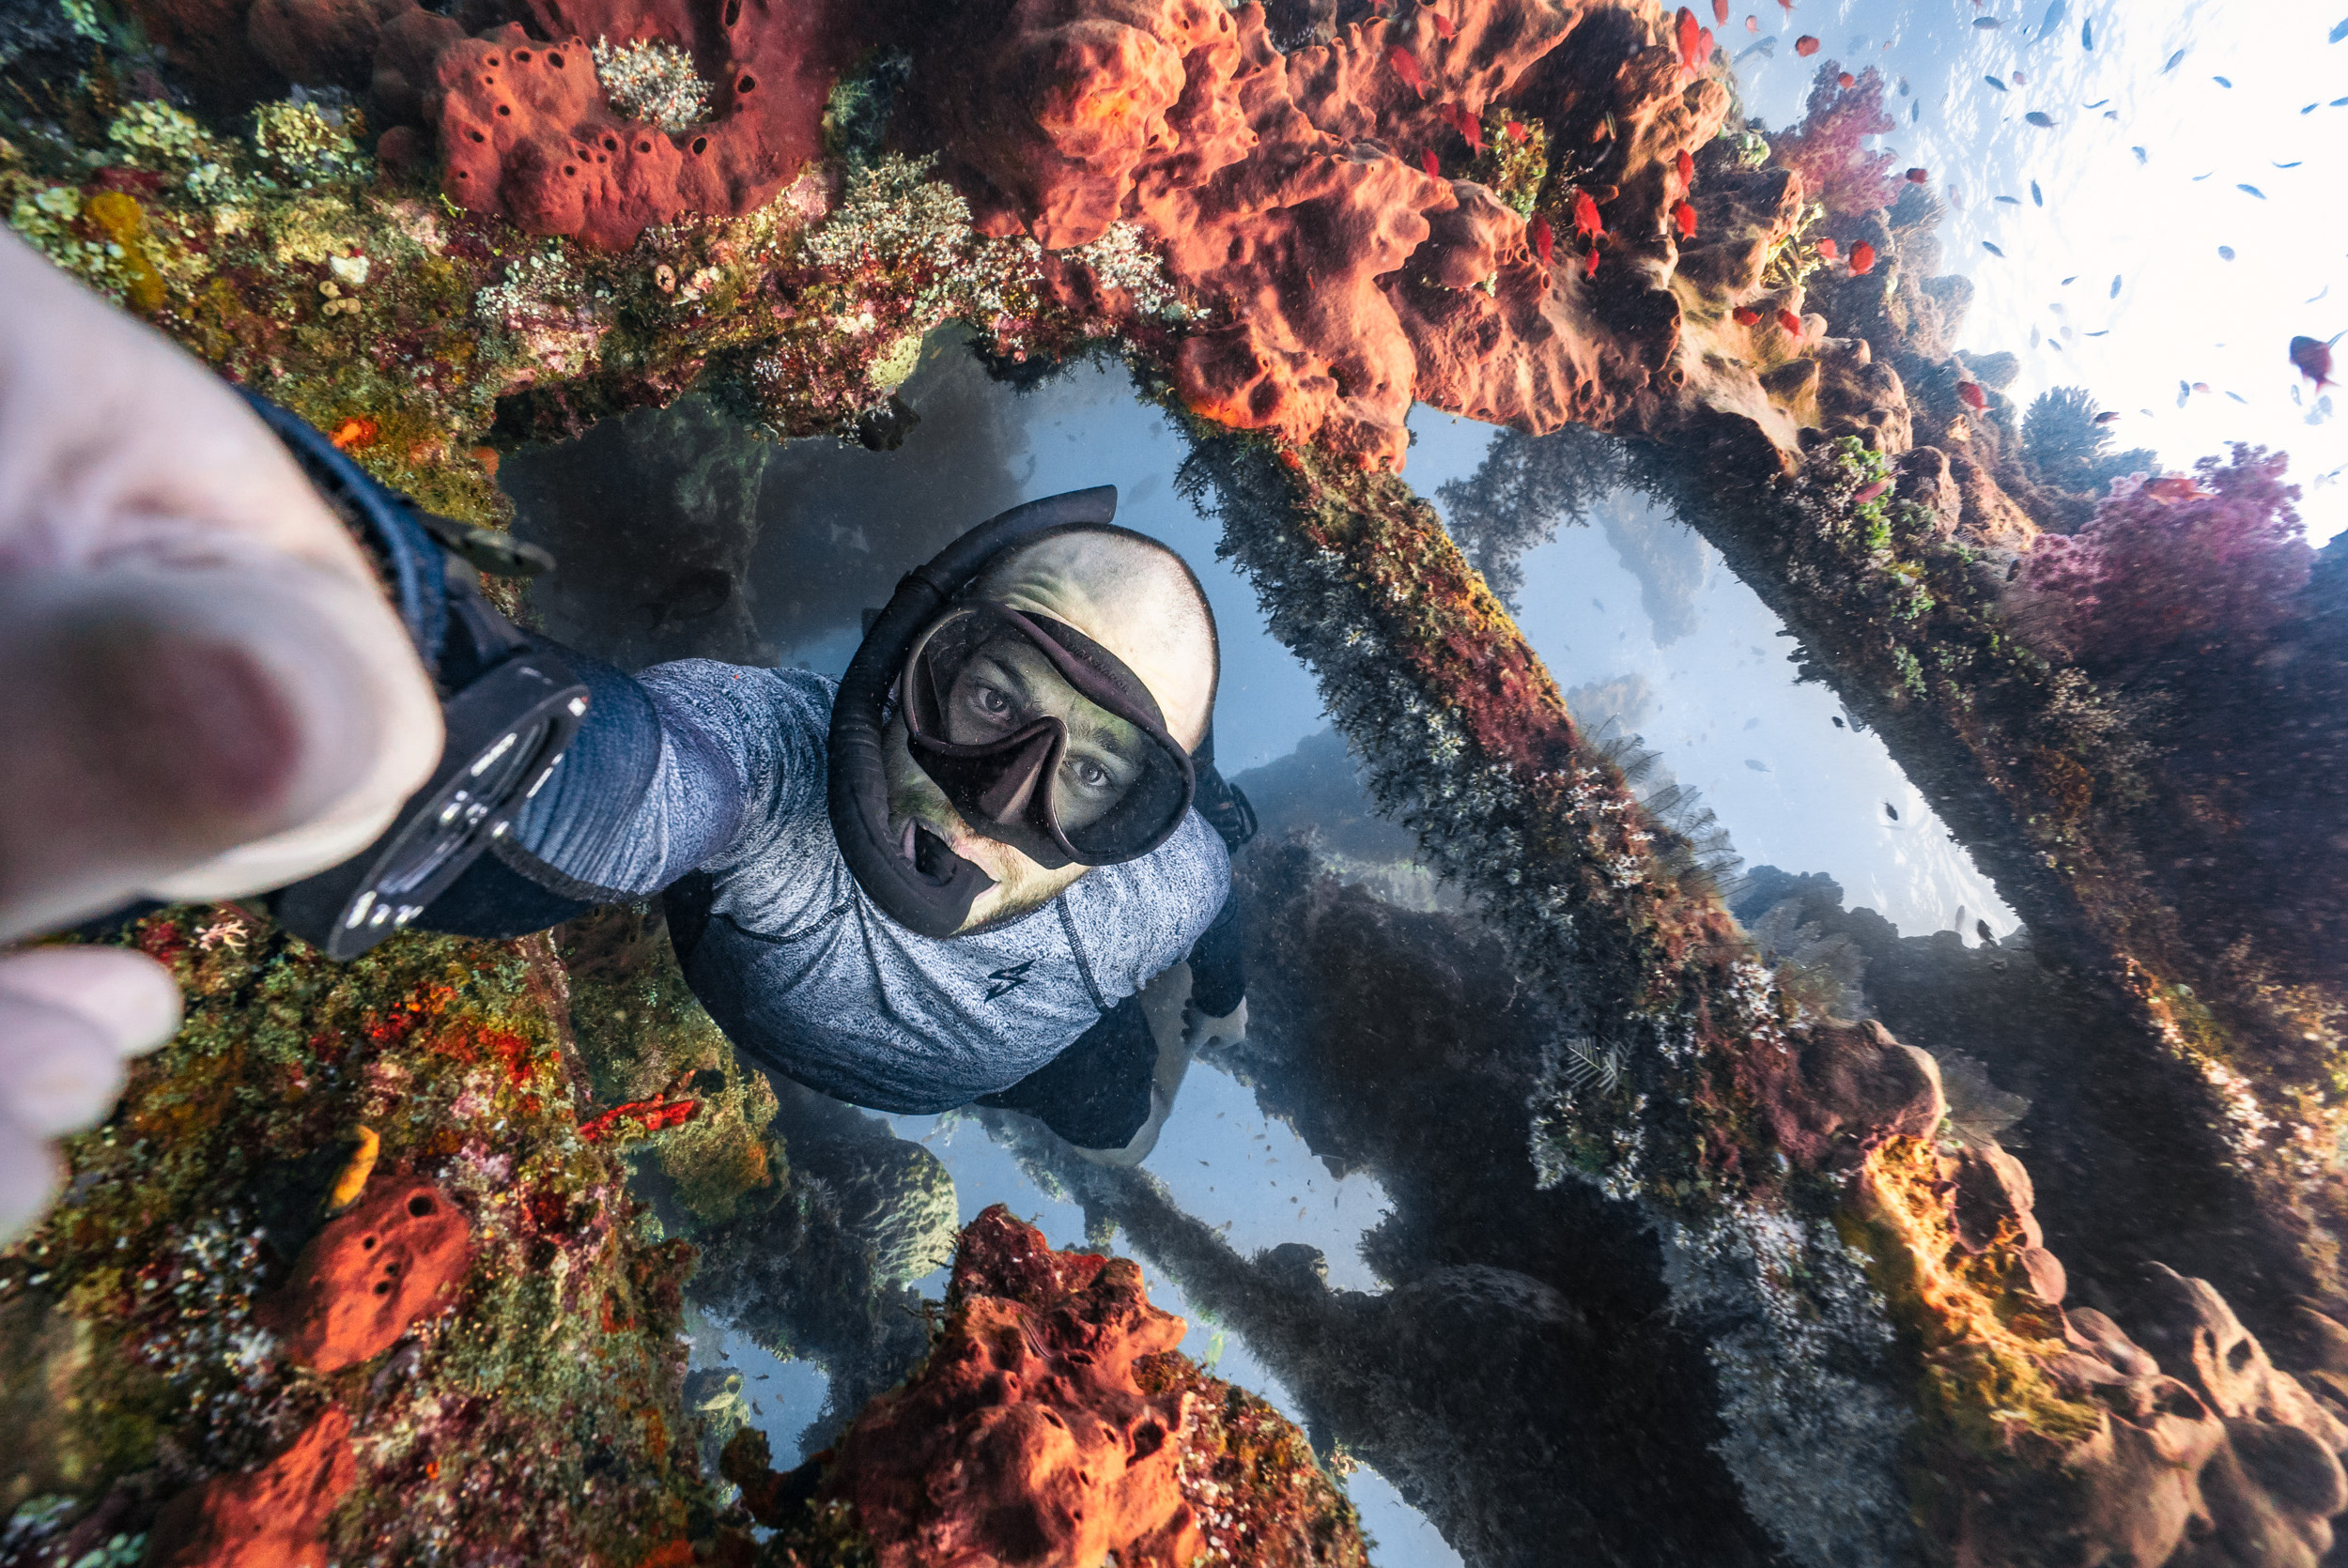 Mike Corey freediving near a colorful reef